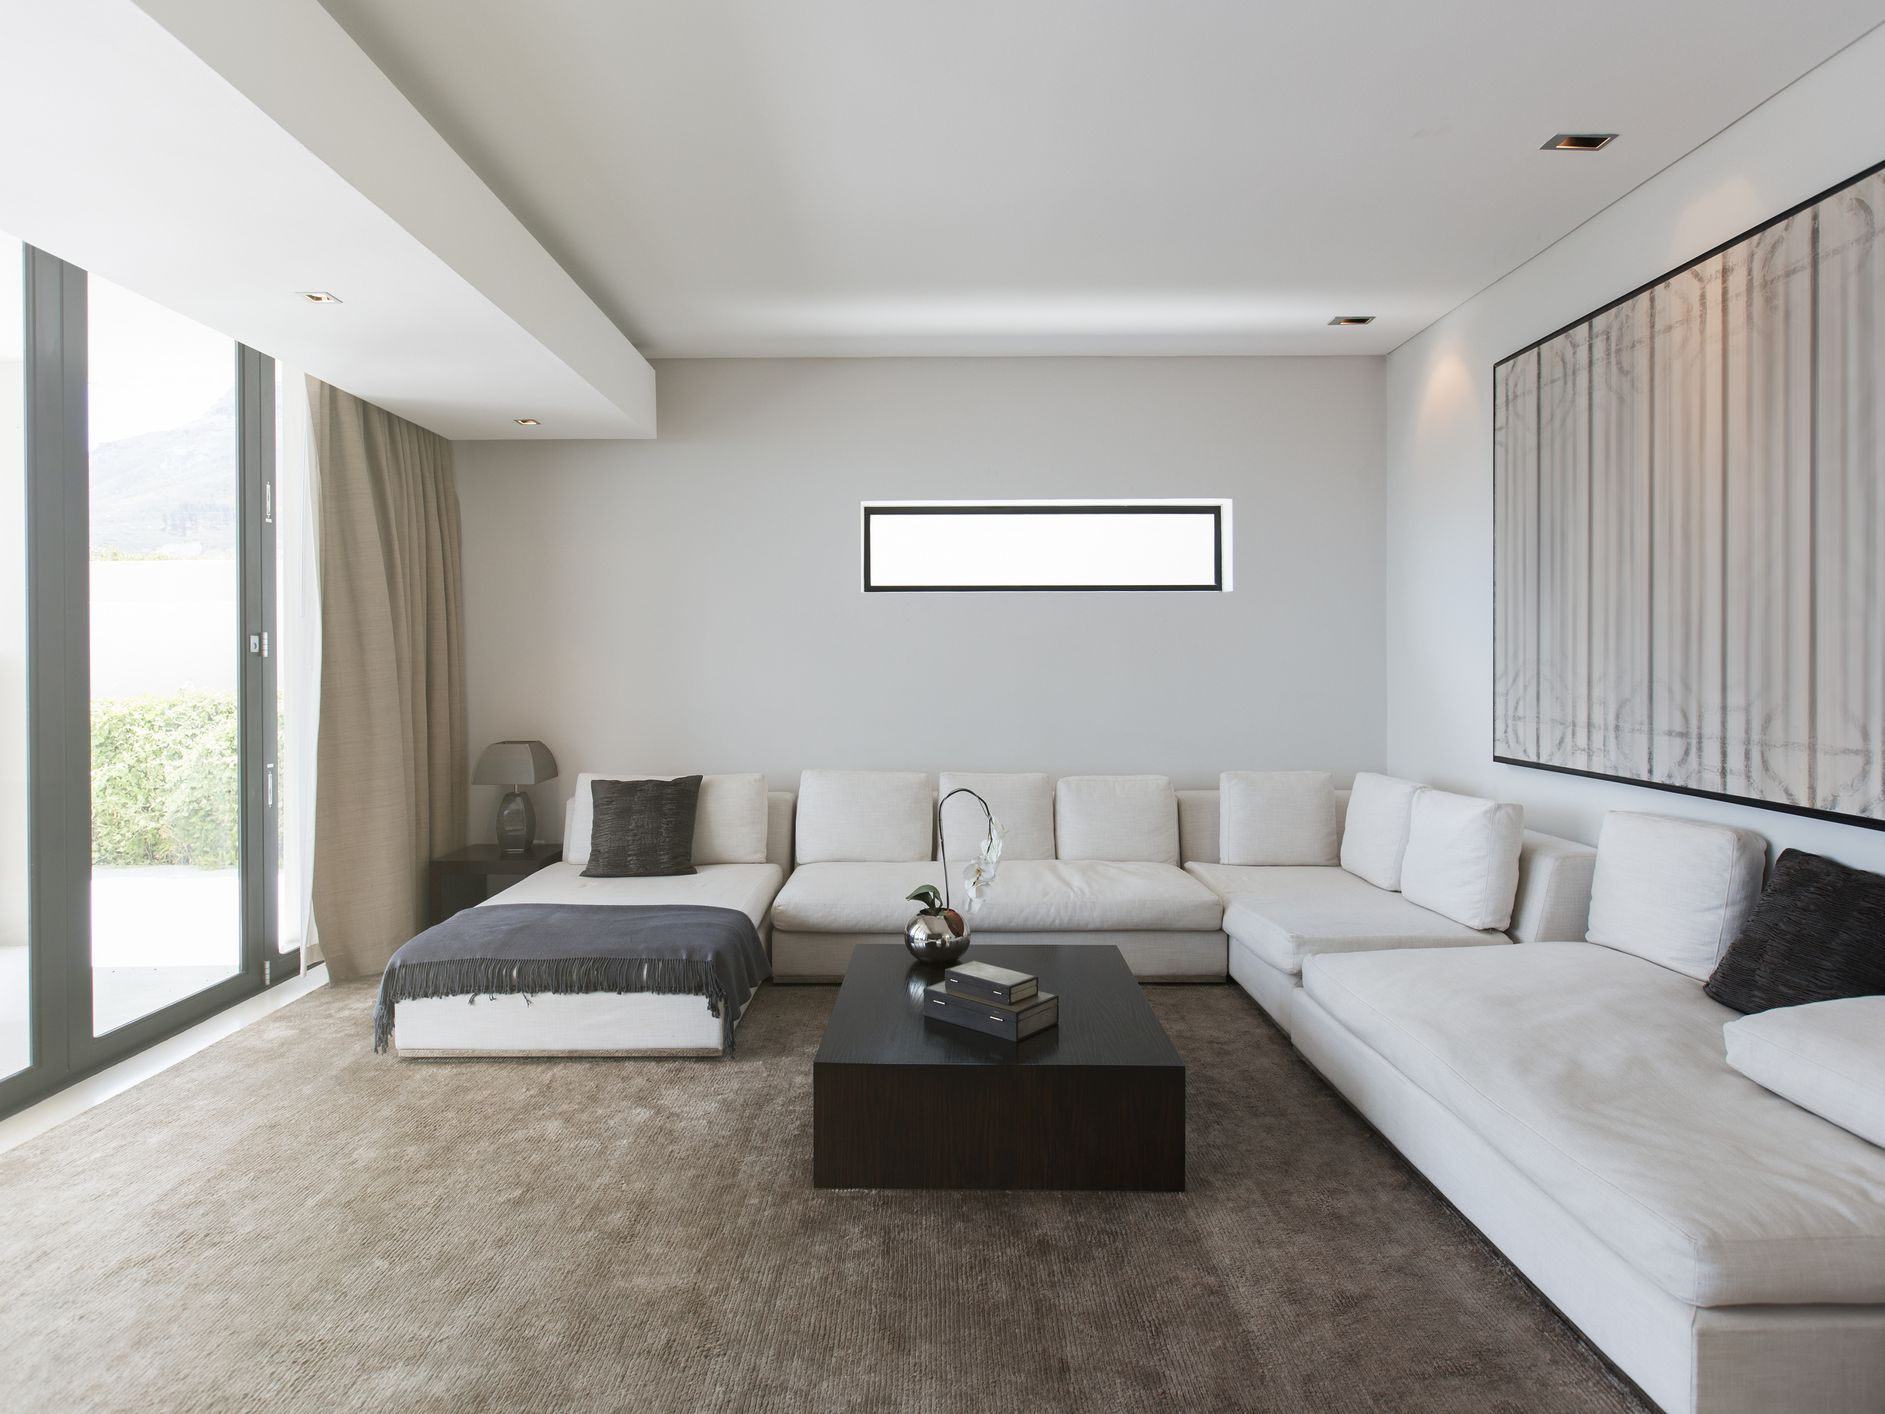 house decorating ideas on a budget.htm room by room decorating basics  room by room decorating basics